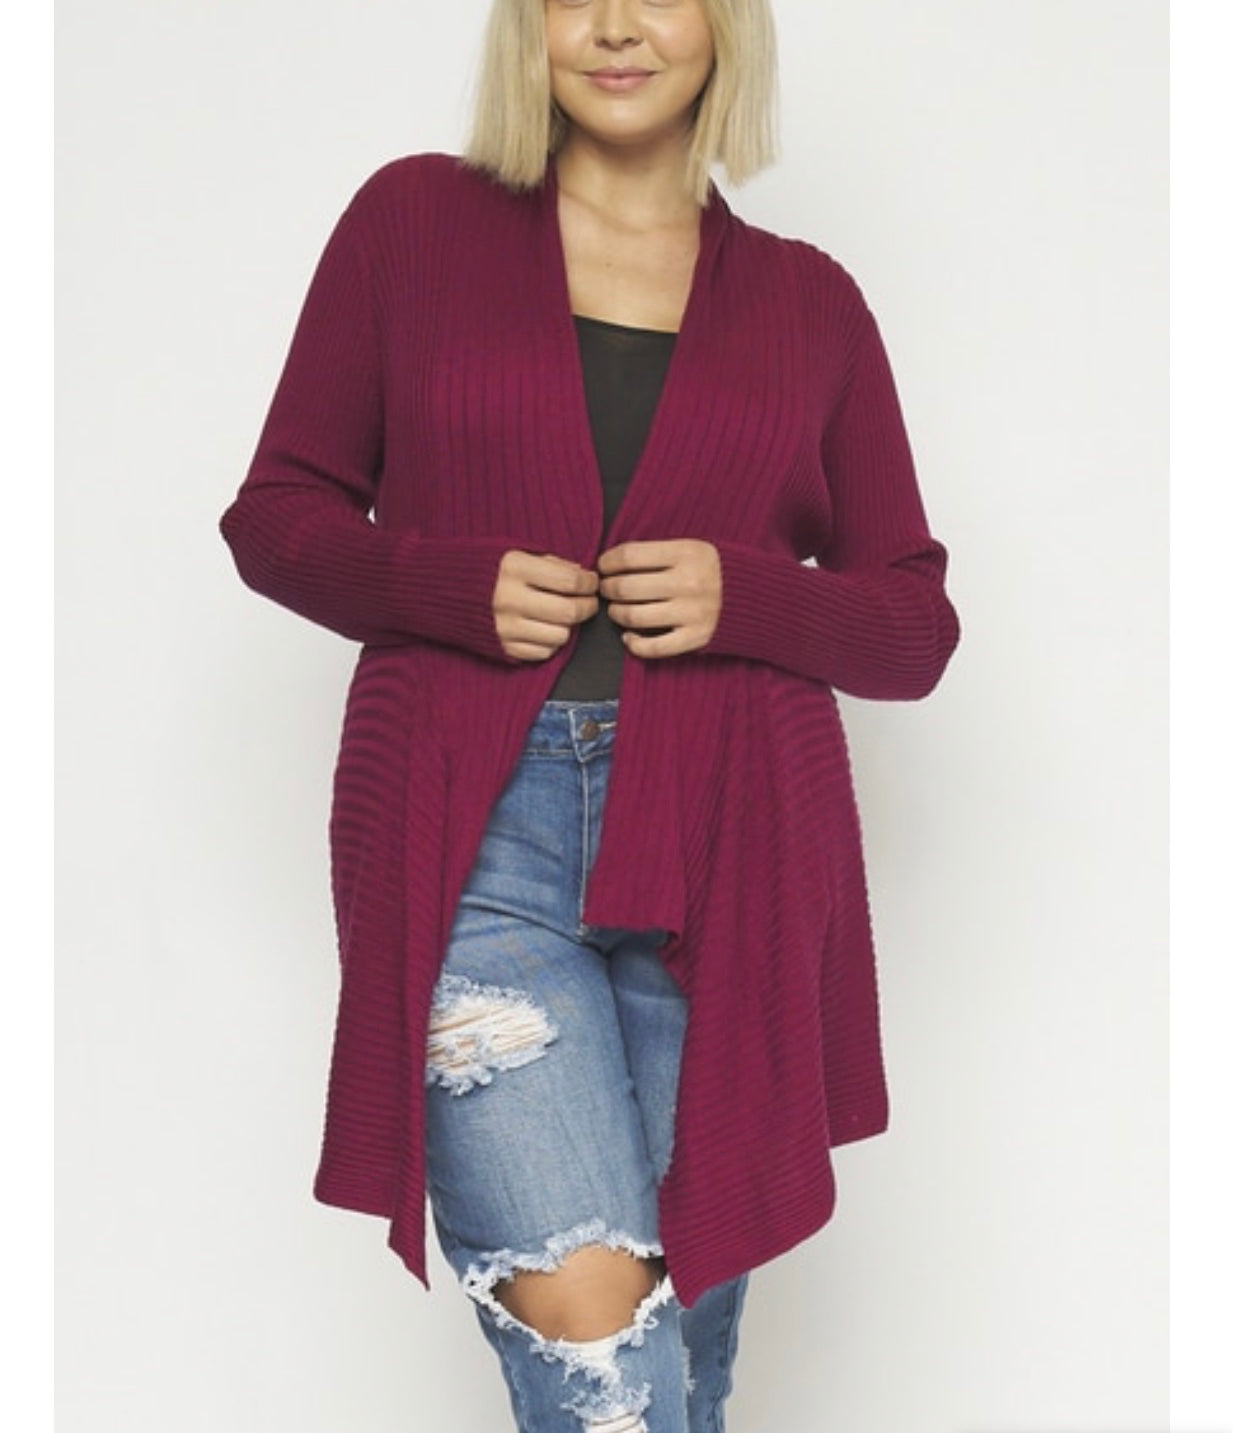 WINE LONG SLEEVE OPEN FRONT THICK KNIT CARDIGAN